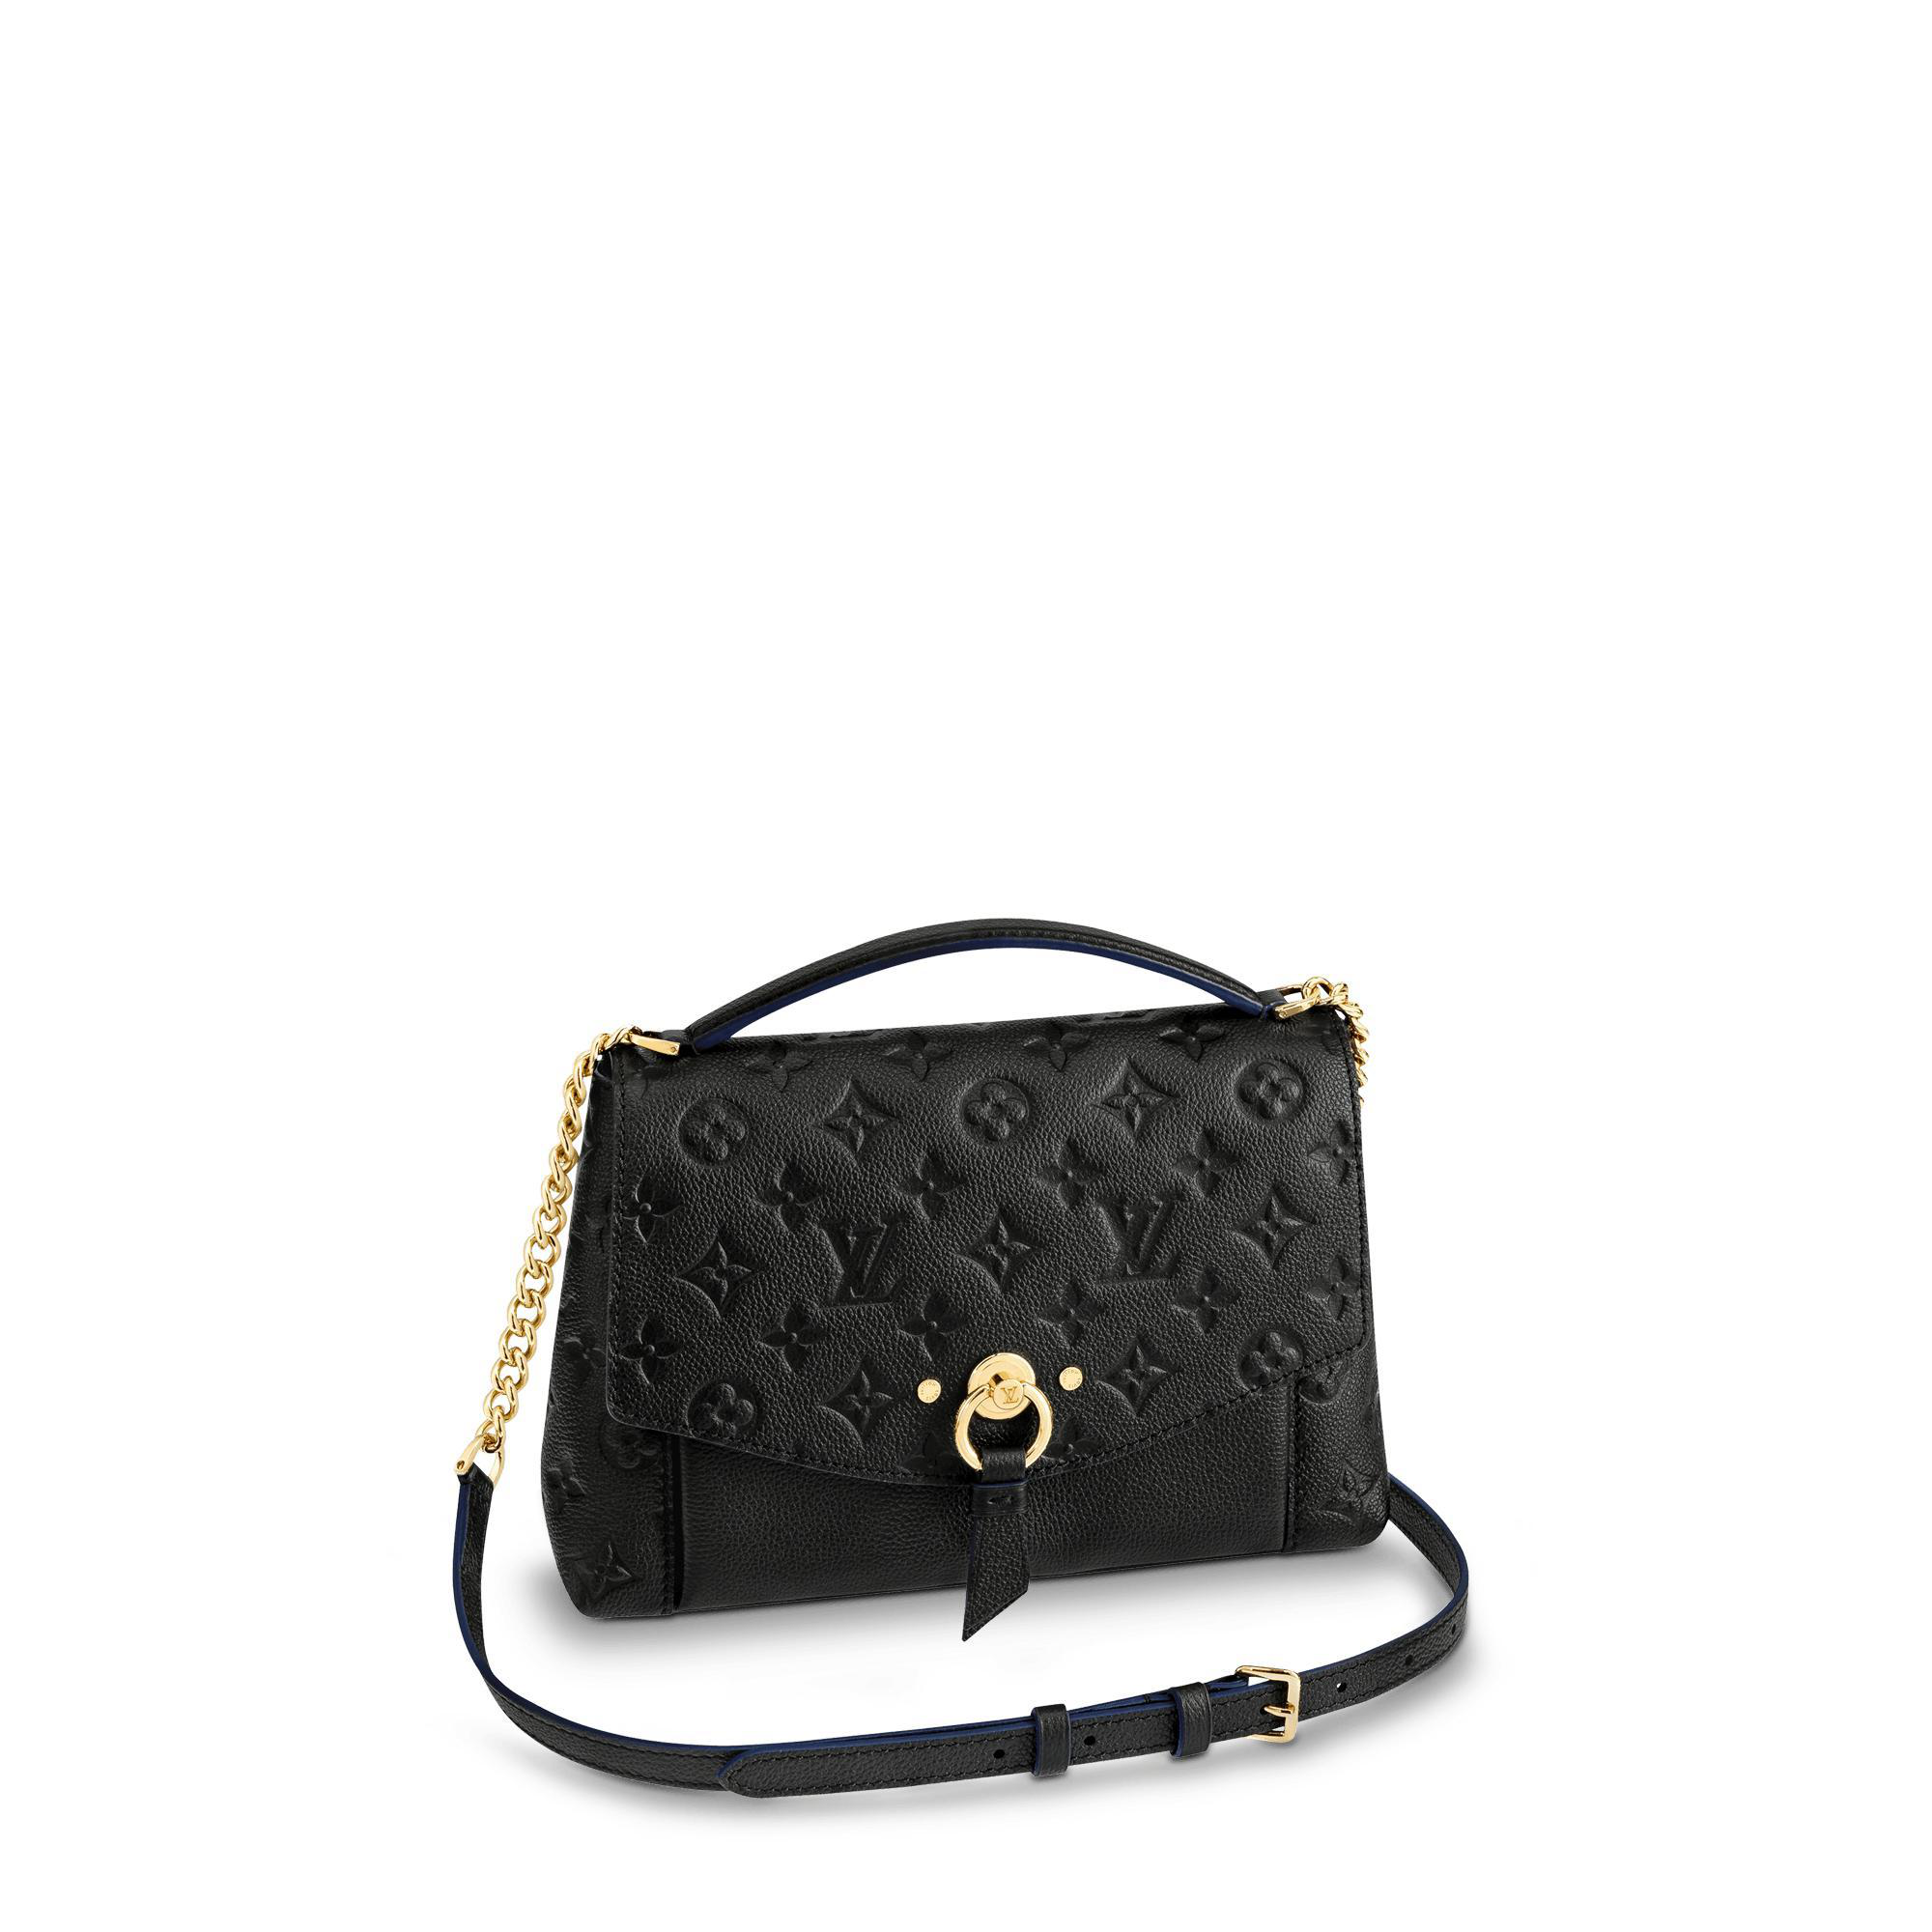 ccf4bee32ae9 Louis Vuitton Blanche Bb In Noir